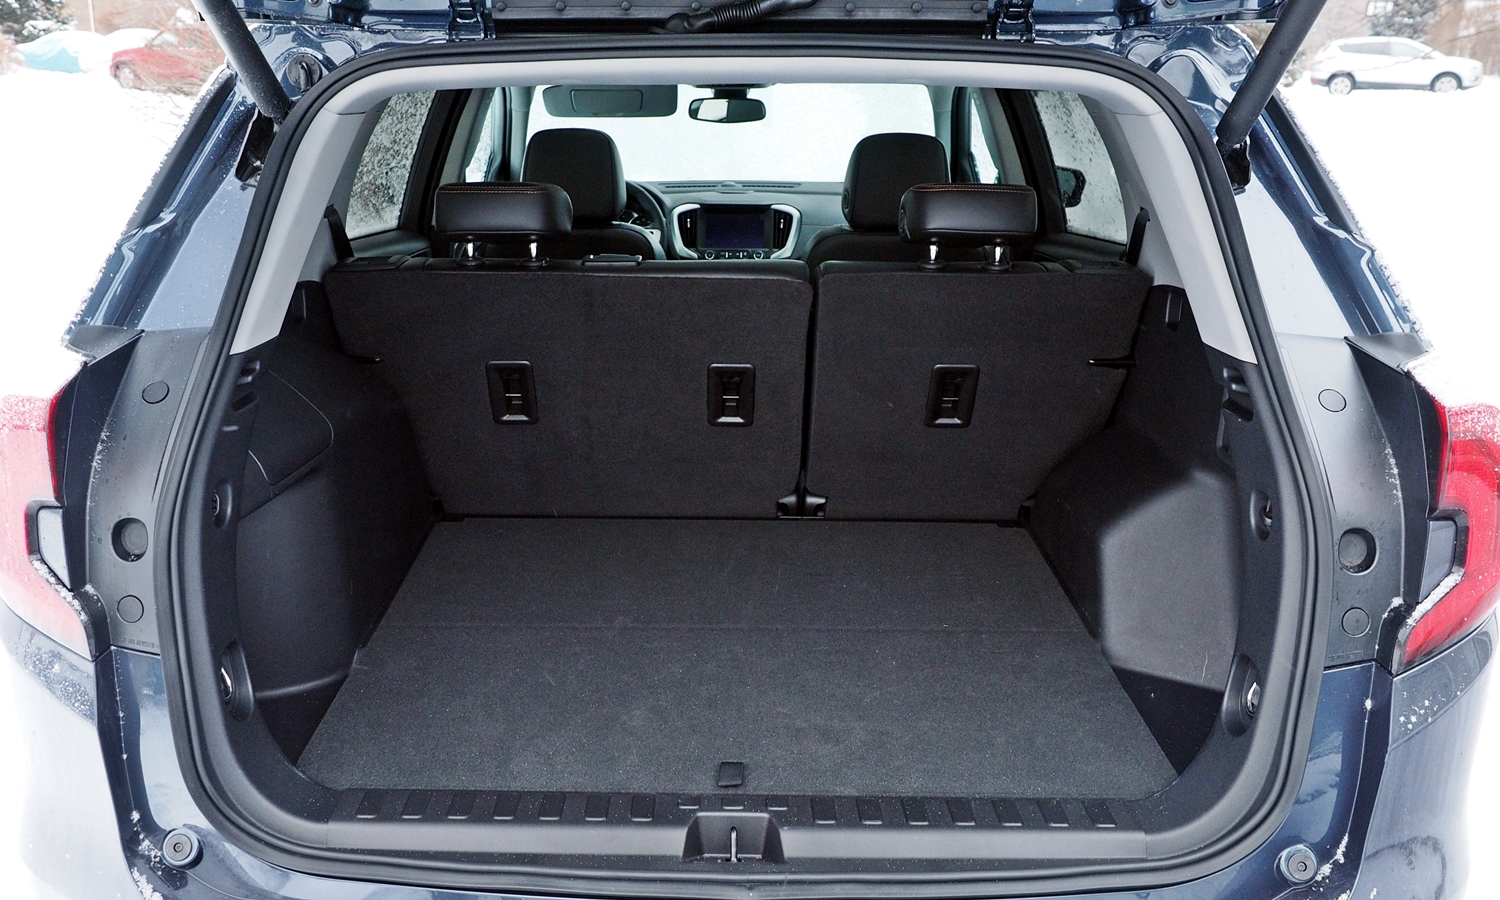 GMC Terrain Photos: 2018 GMC Terrain cargo area